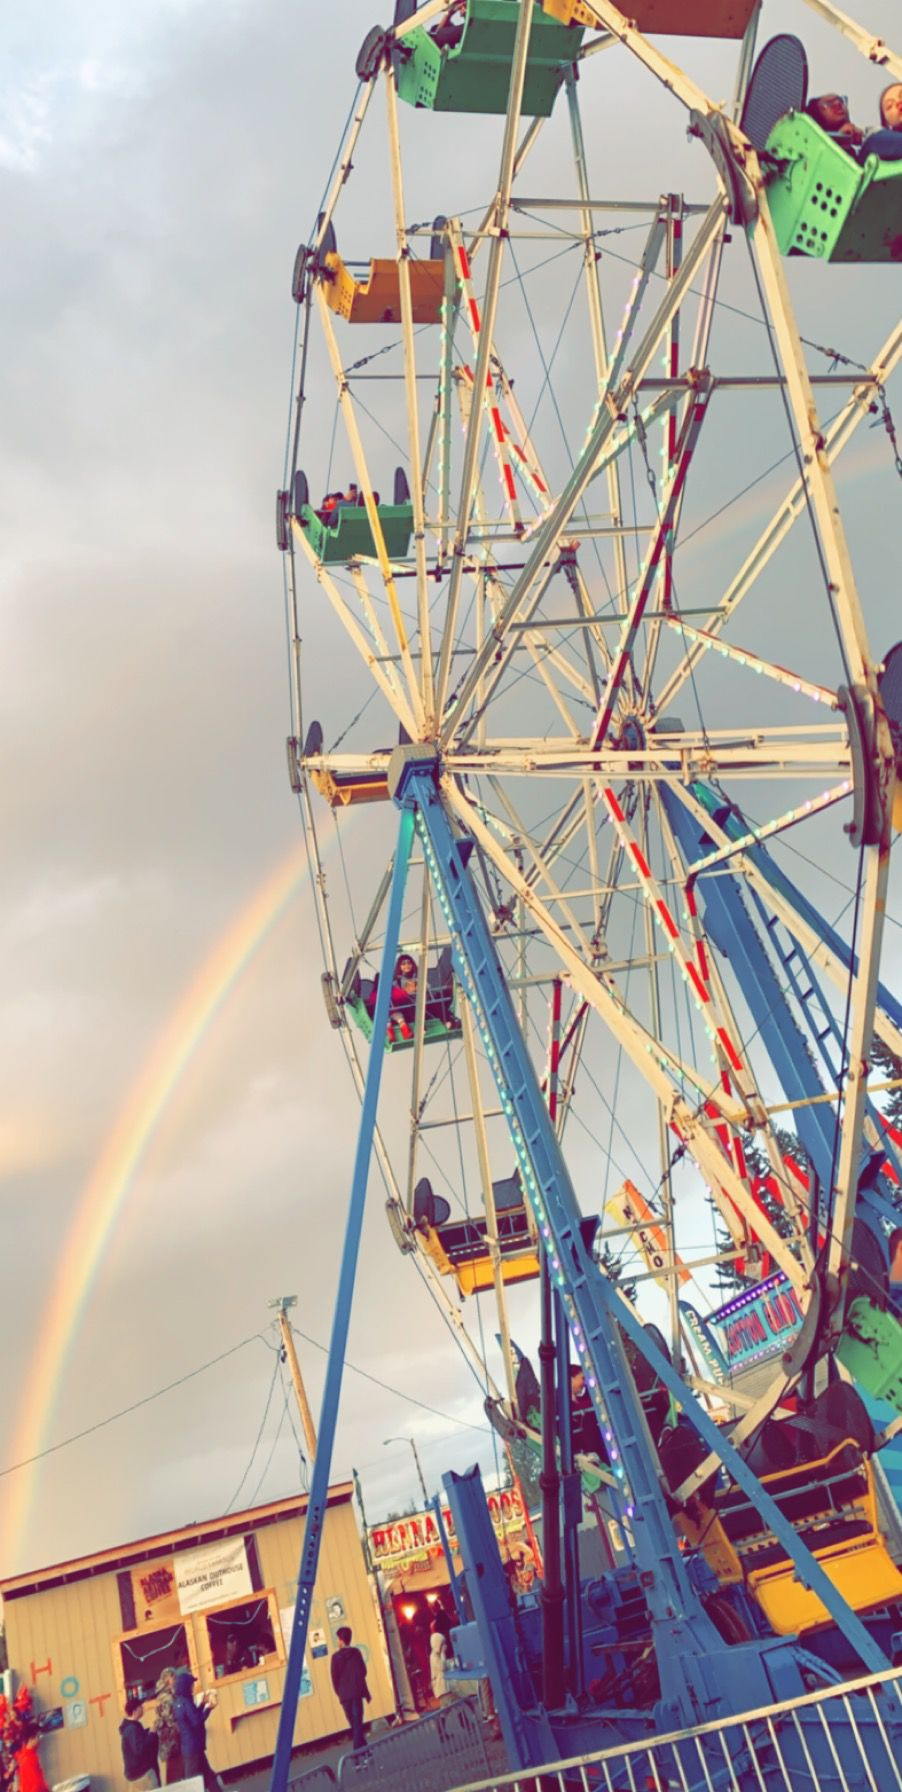 Chasing a pot of gold at the Tanana Valley State Fair